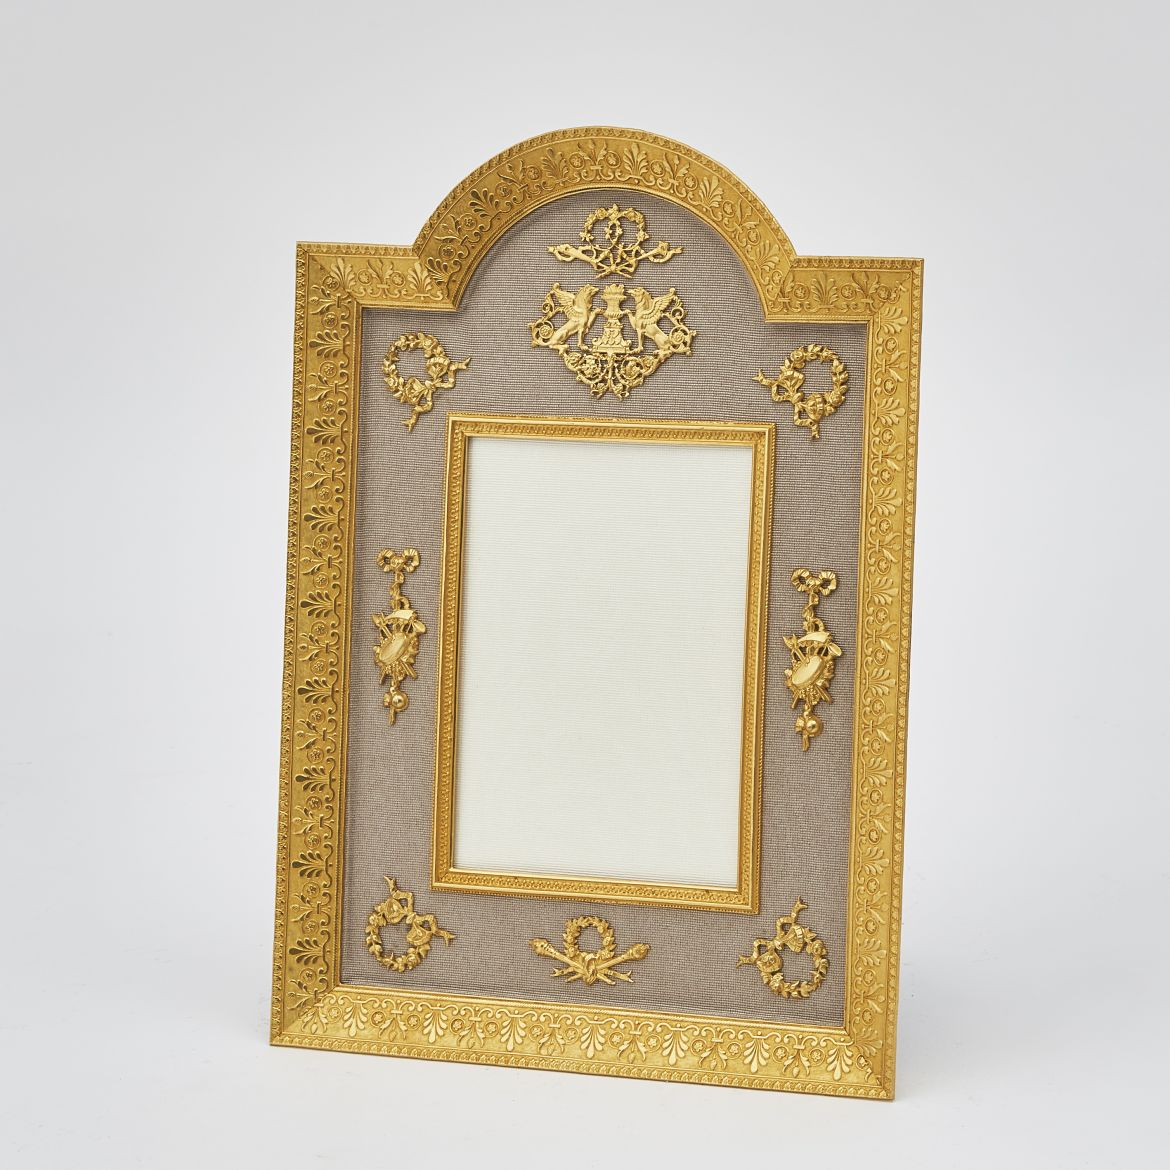 Gilt Bronze Arch Top Frame With Classical Motifs